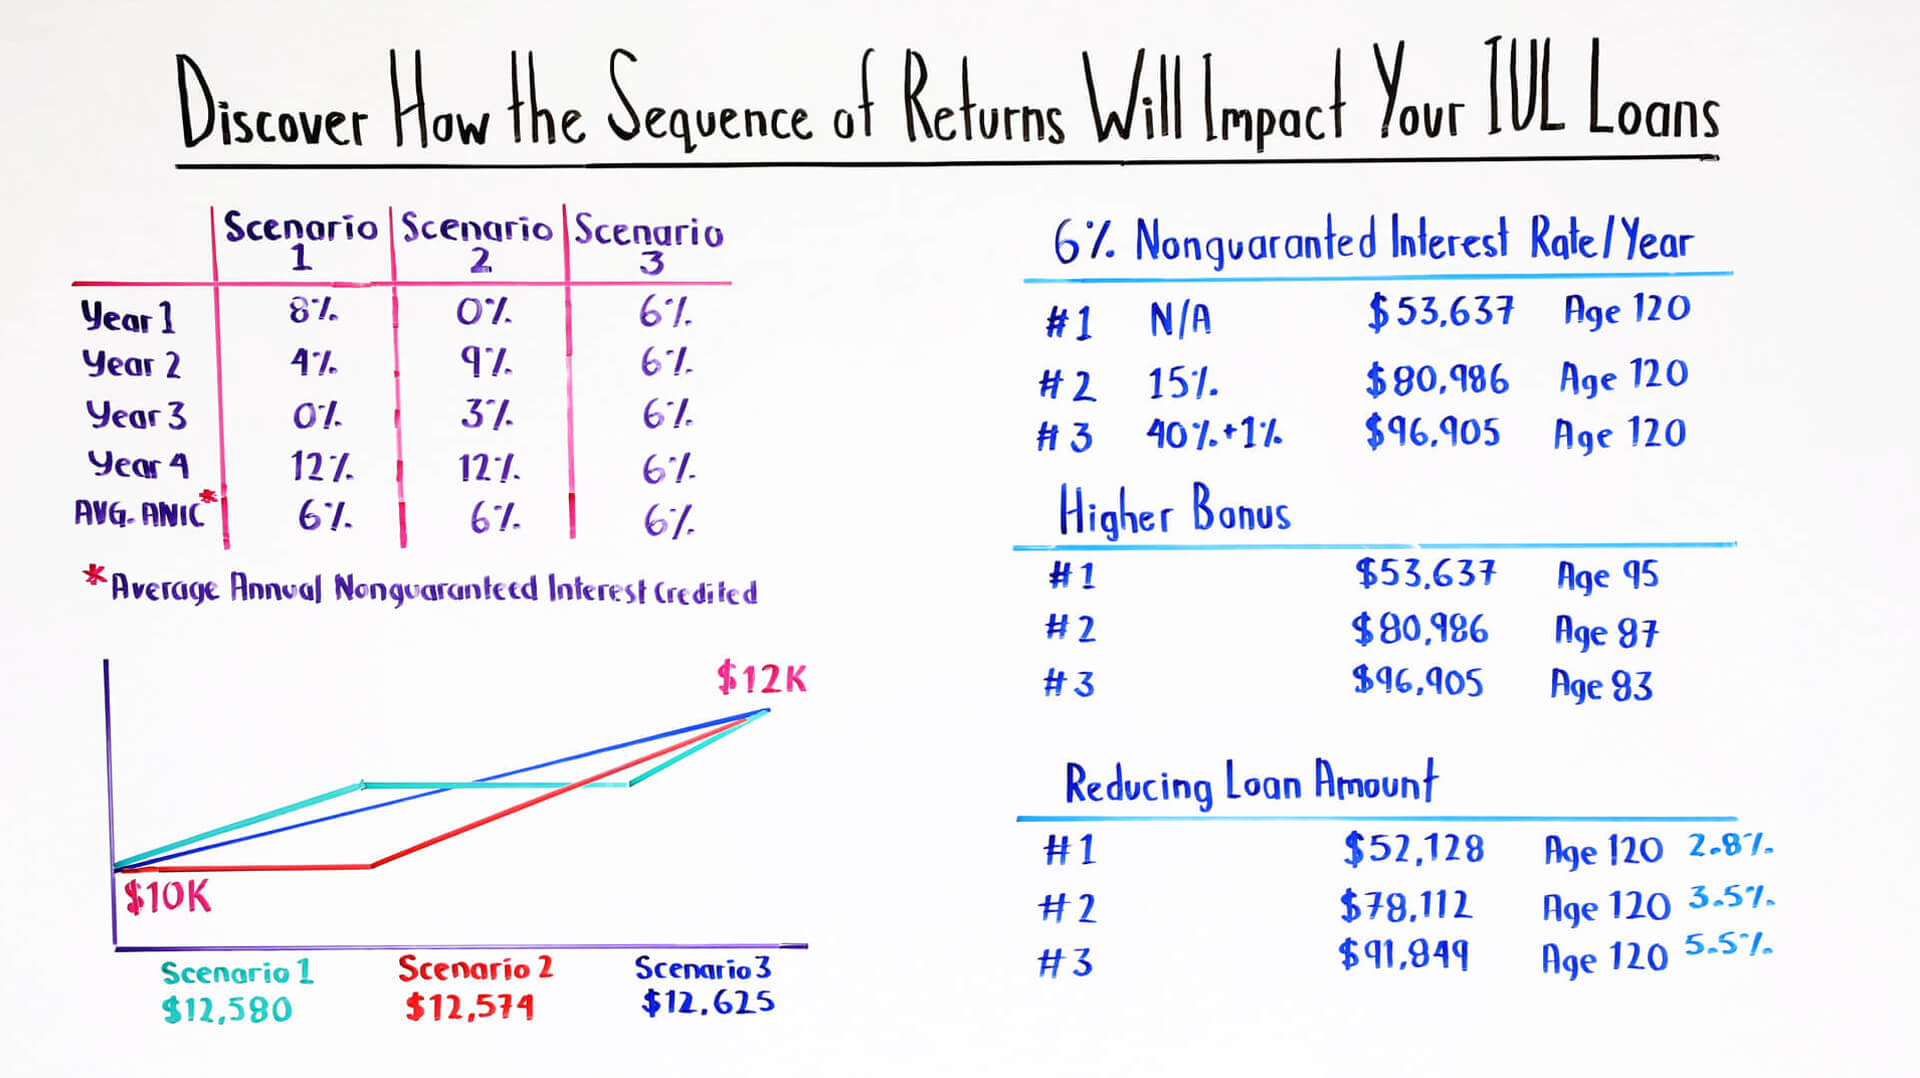 discover-how-the-sequence-of-returns-will-impact-your-iul-loans